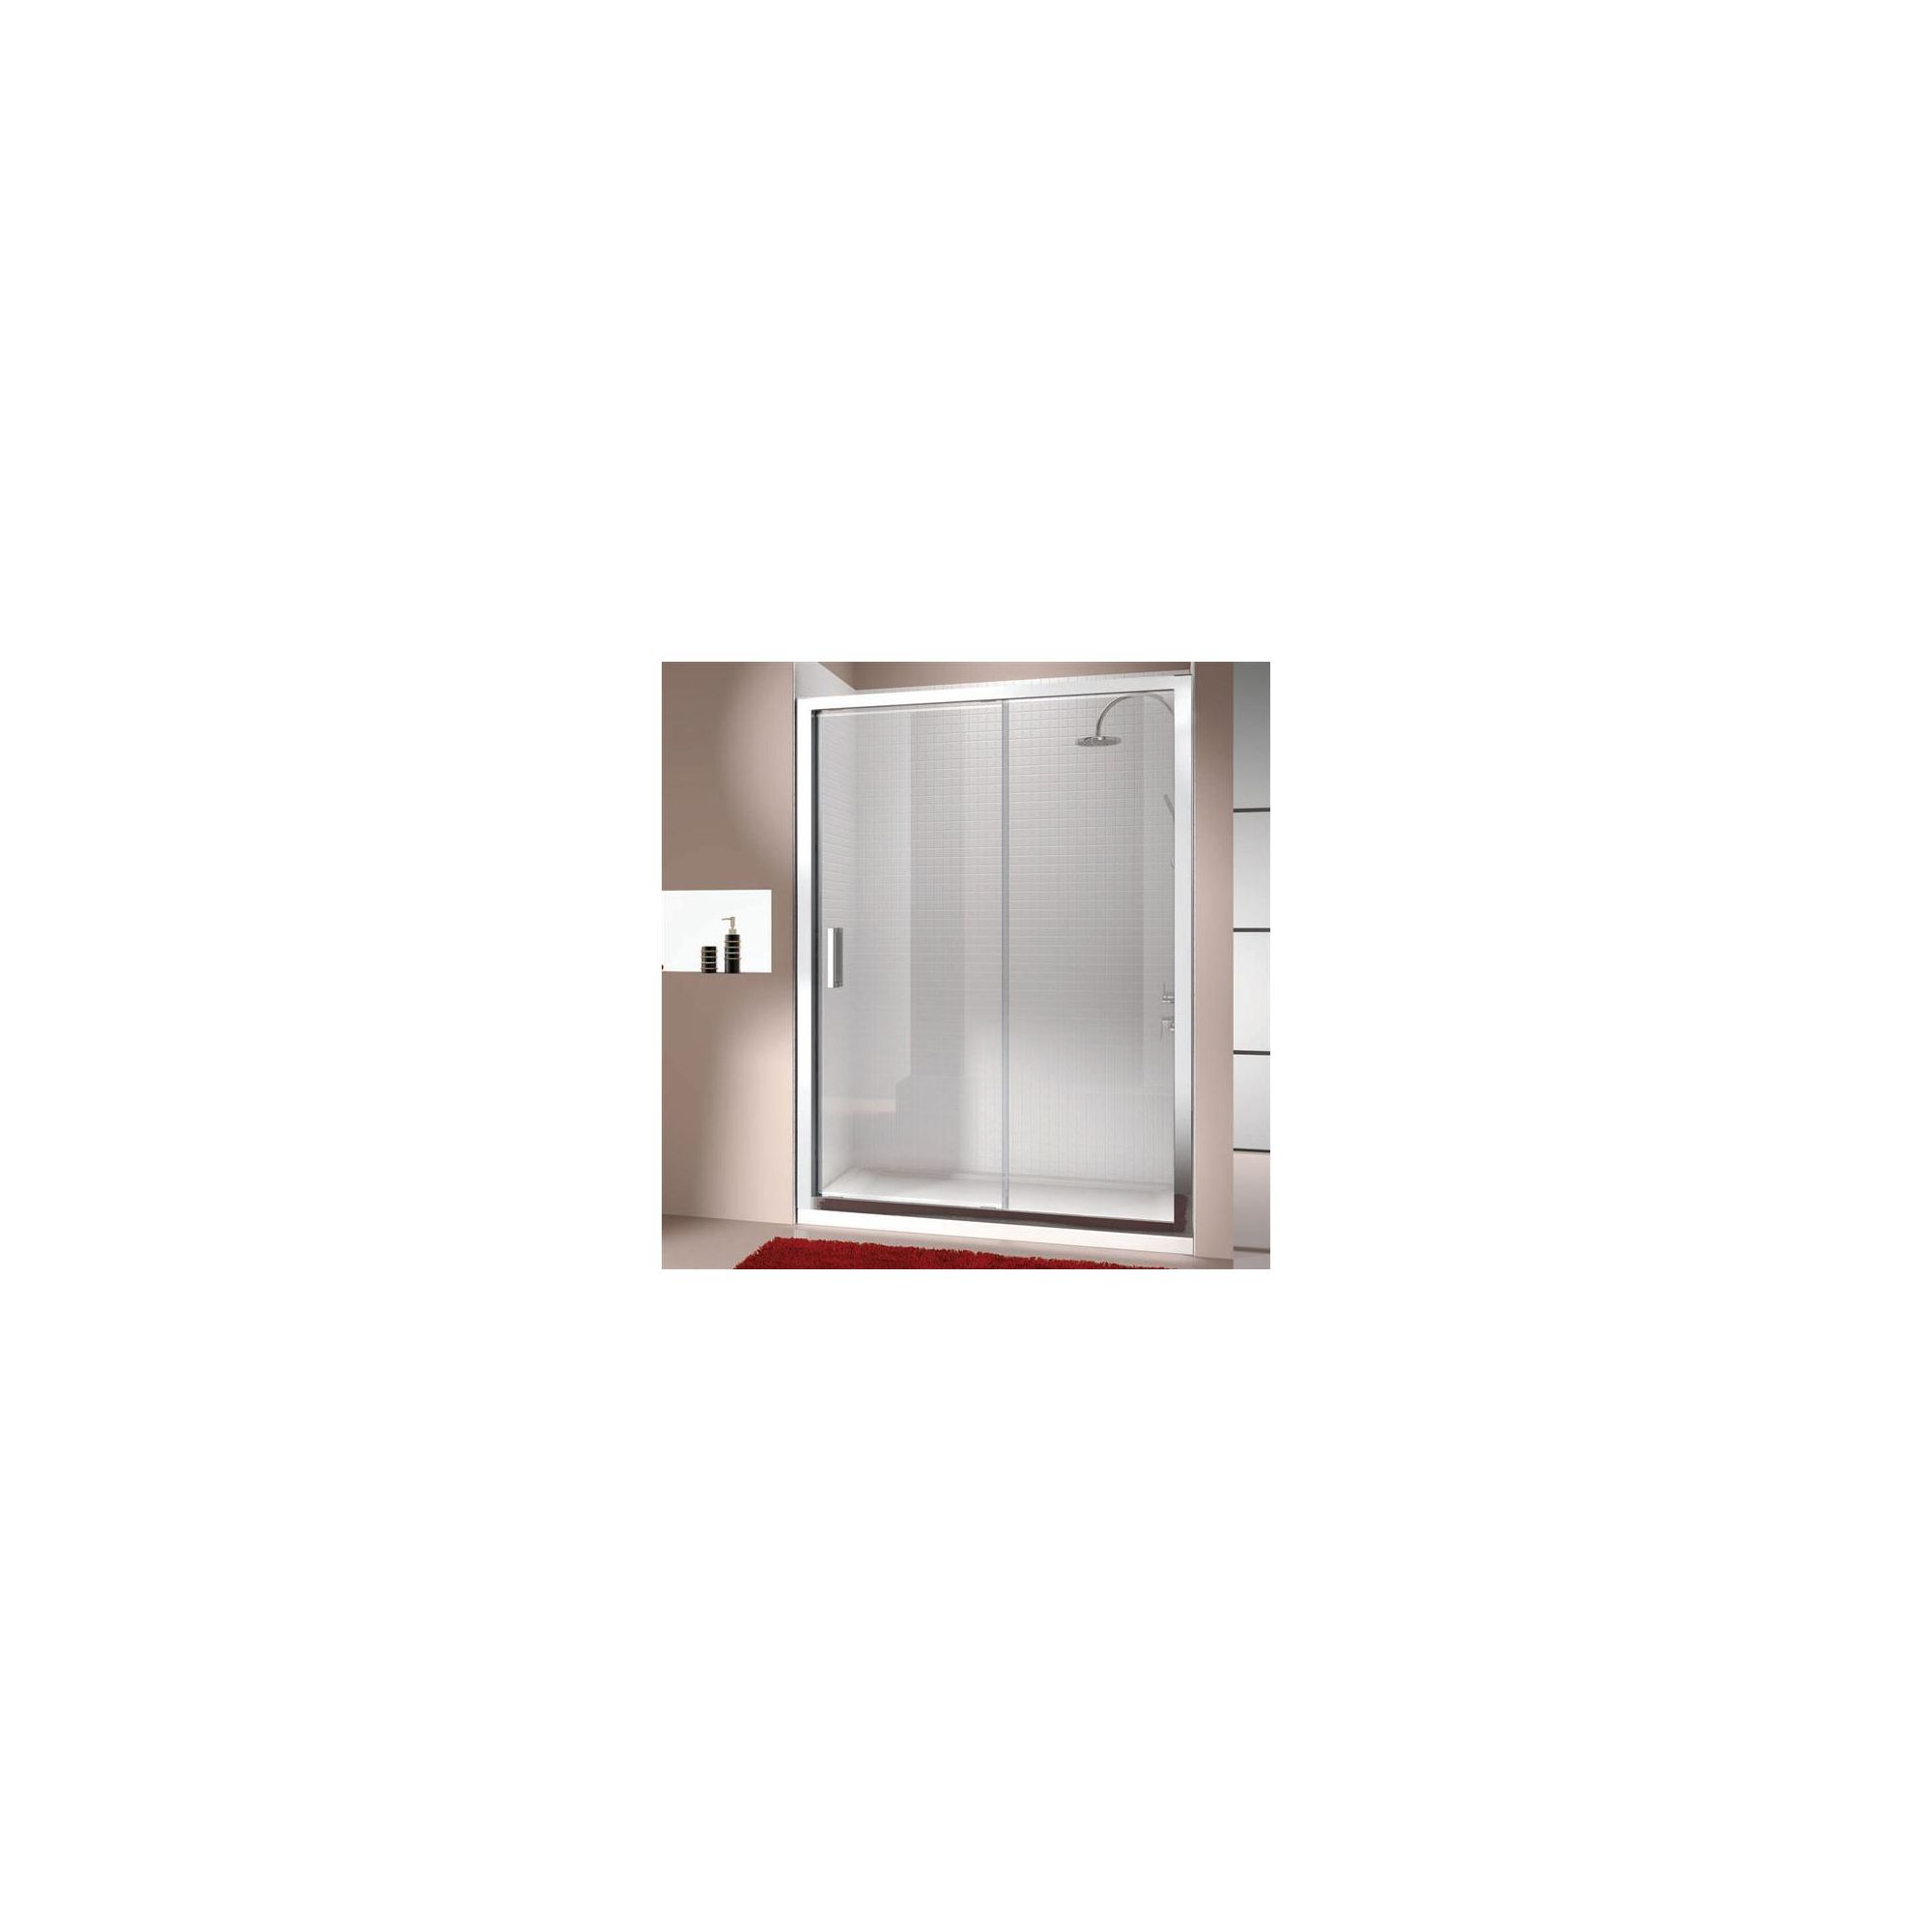 Merlyn Vivid Eight Sliding Door Alcove Shower Enclosure, 1700mm x 800mm, Low Profile Tray, 8mm Glass at Tescos Direct